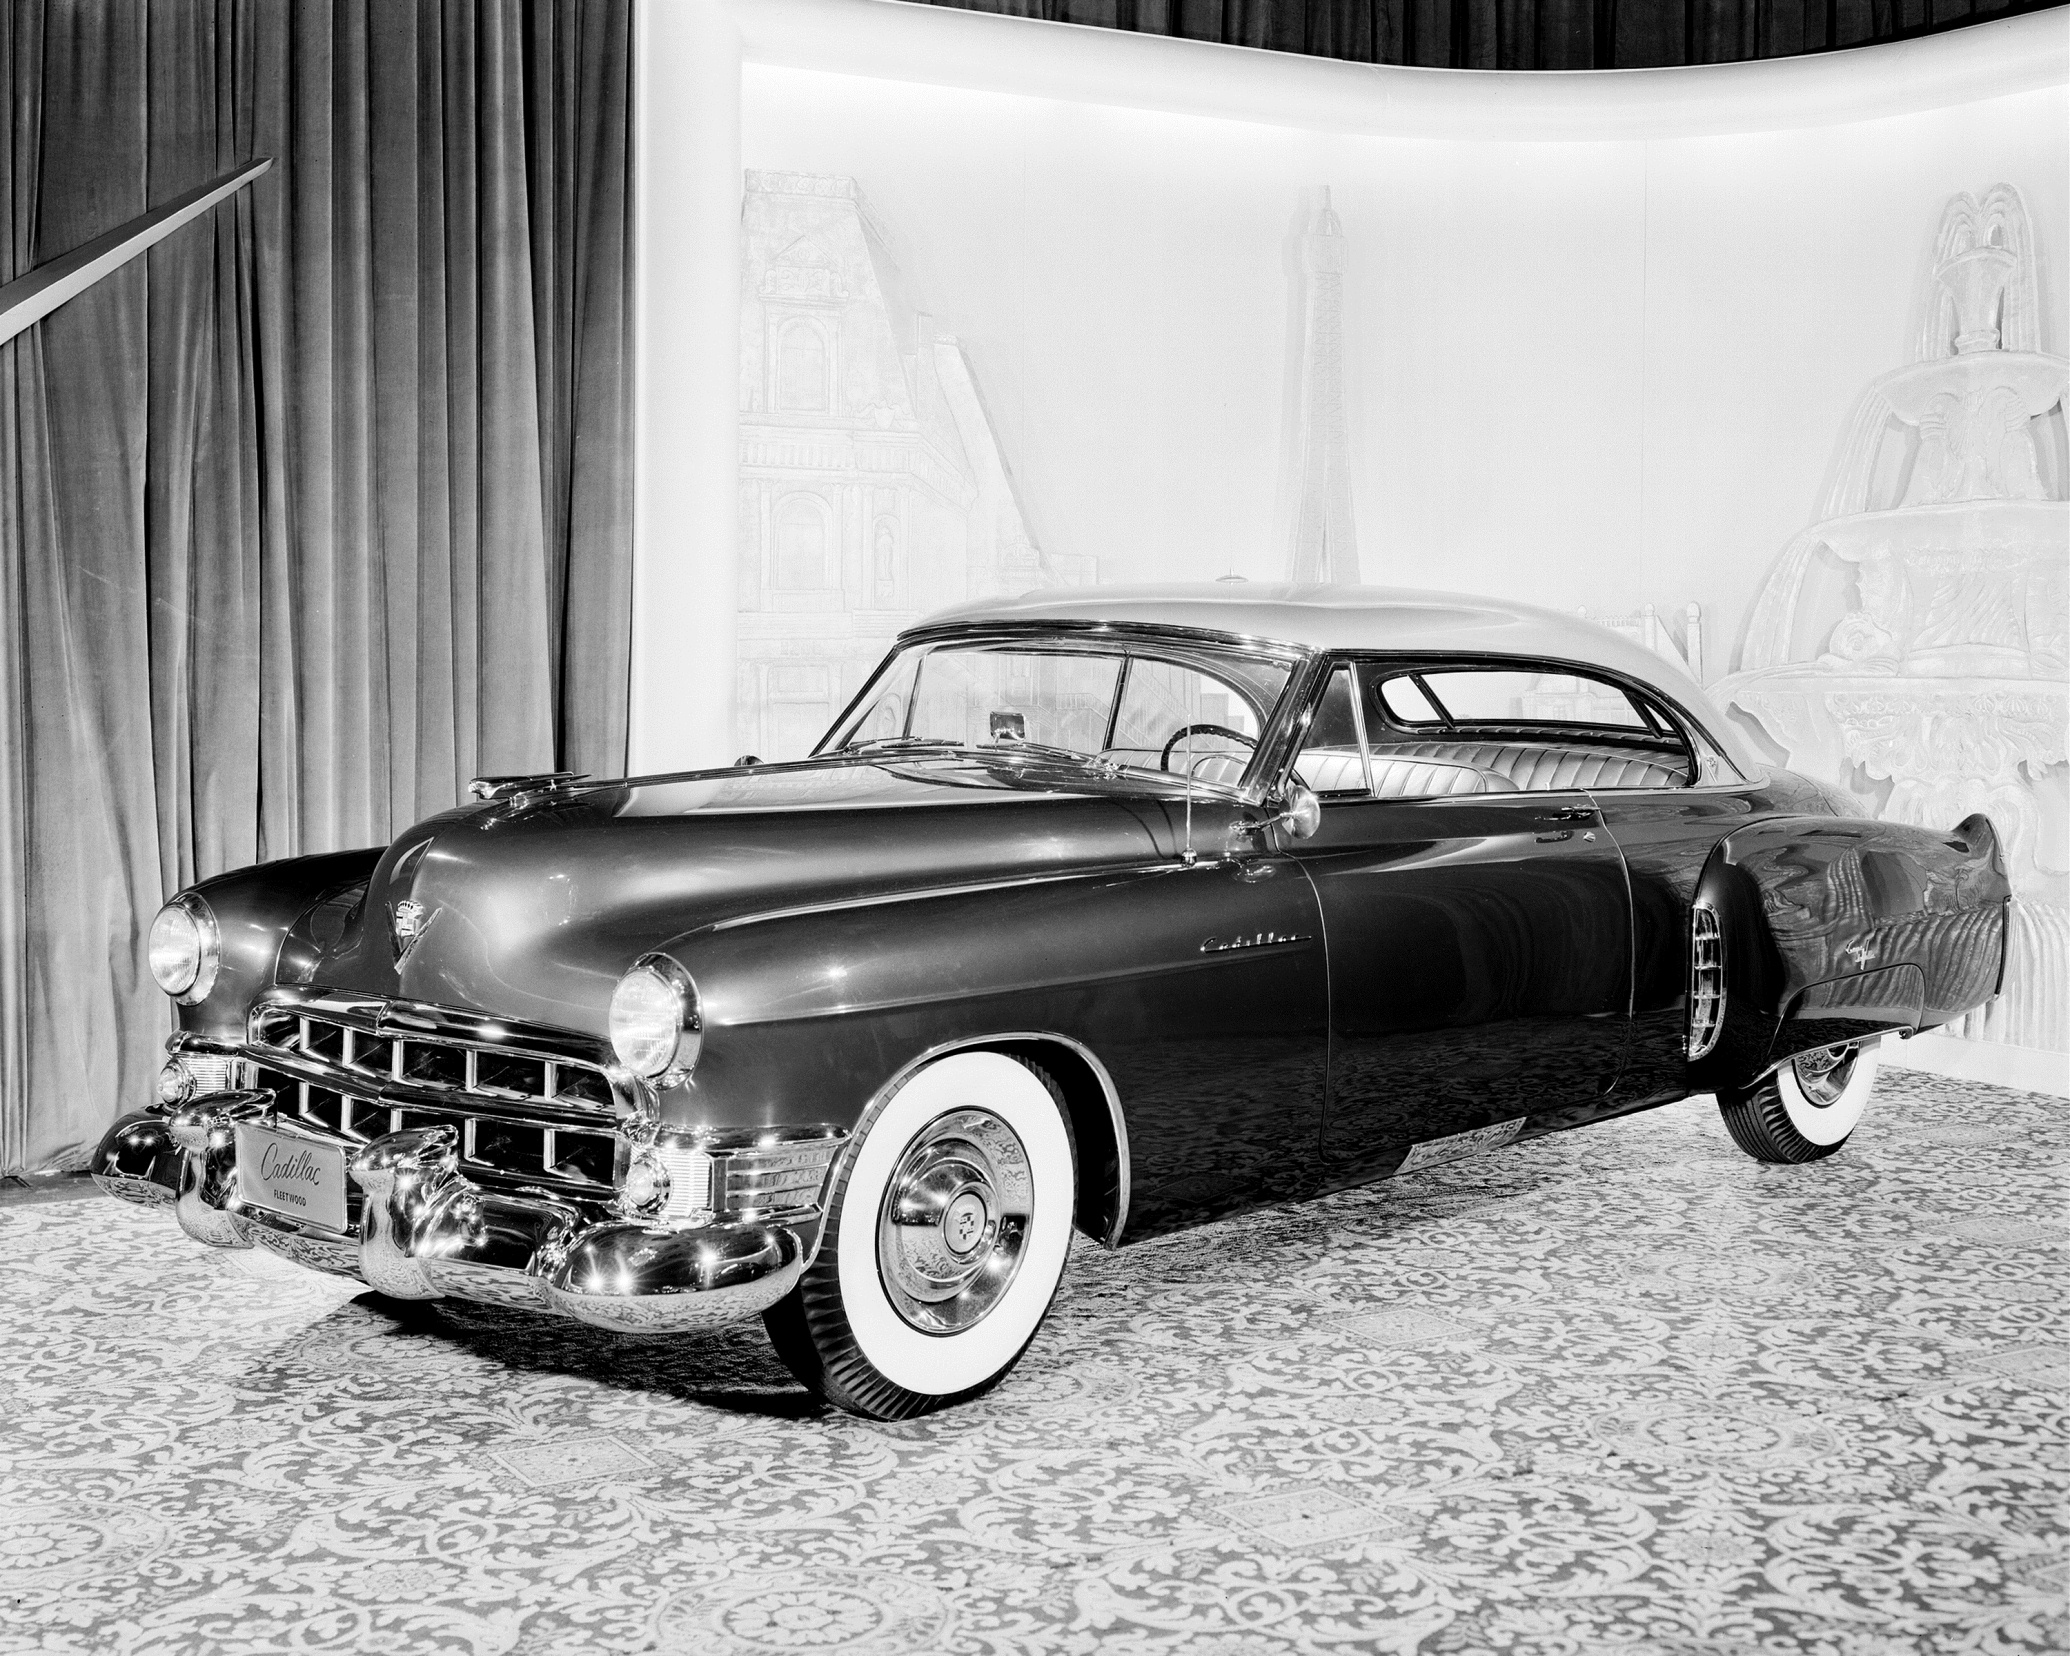 Cadillac Coupe De Ville Prototype First Public Showing In 64 Years At Amelia Island